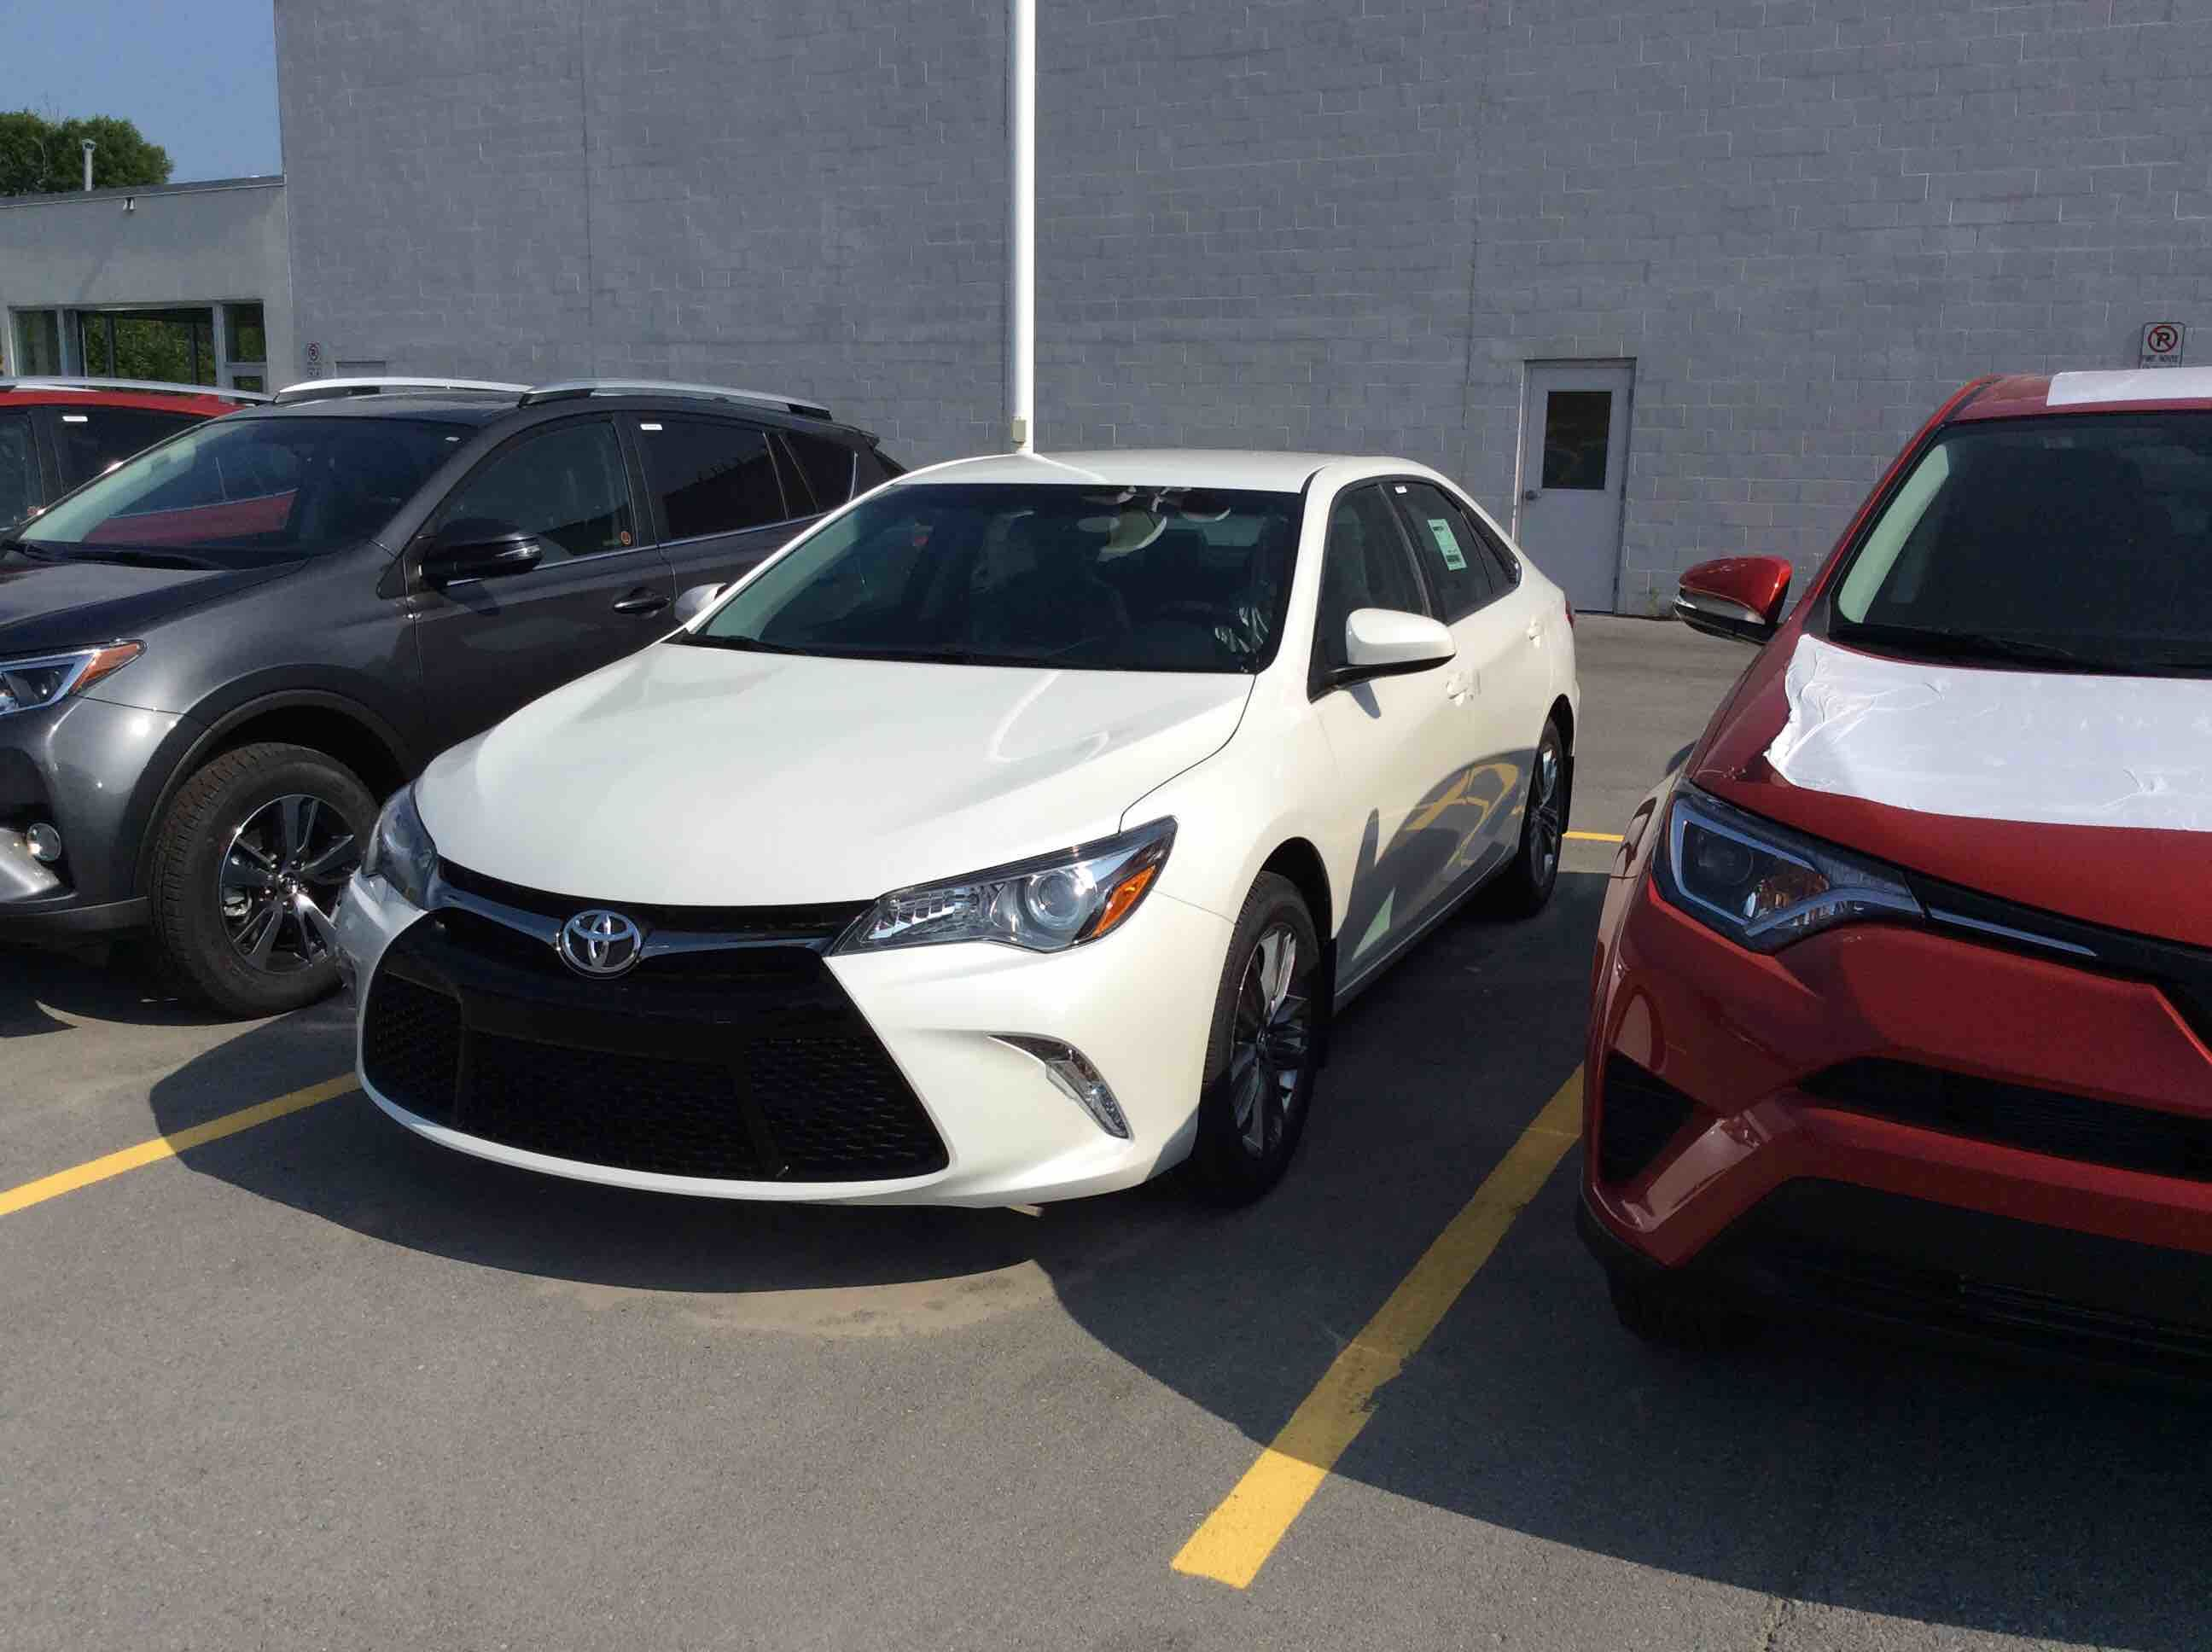 4926456_06001_2017-toyota-camry_002 Stunning toyota Camry 2017 Le Vs Se Cars Trend